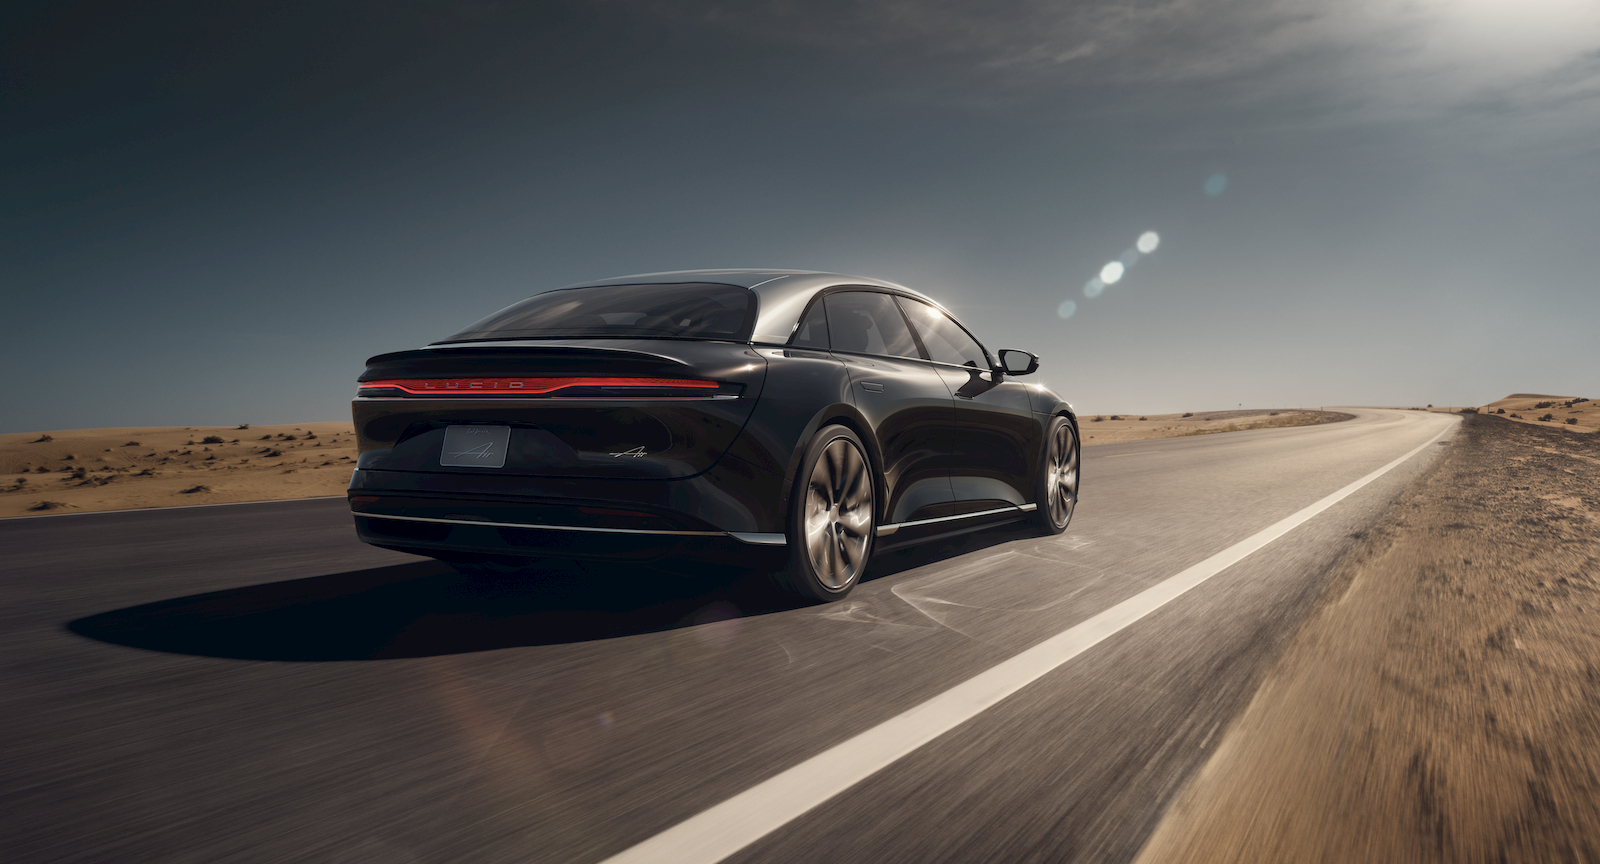 Lucid hints its first EV will have Tesla-beating range